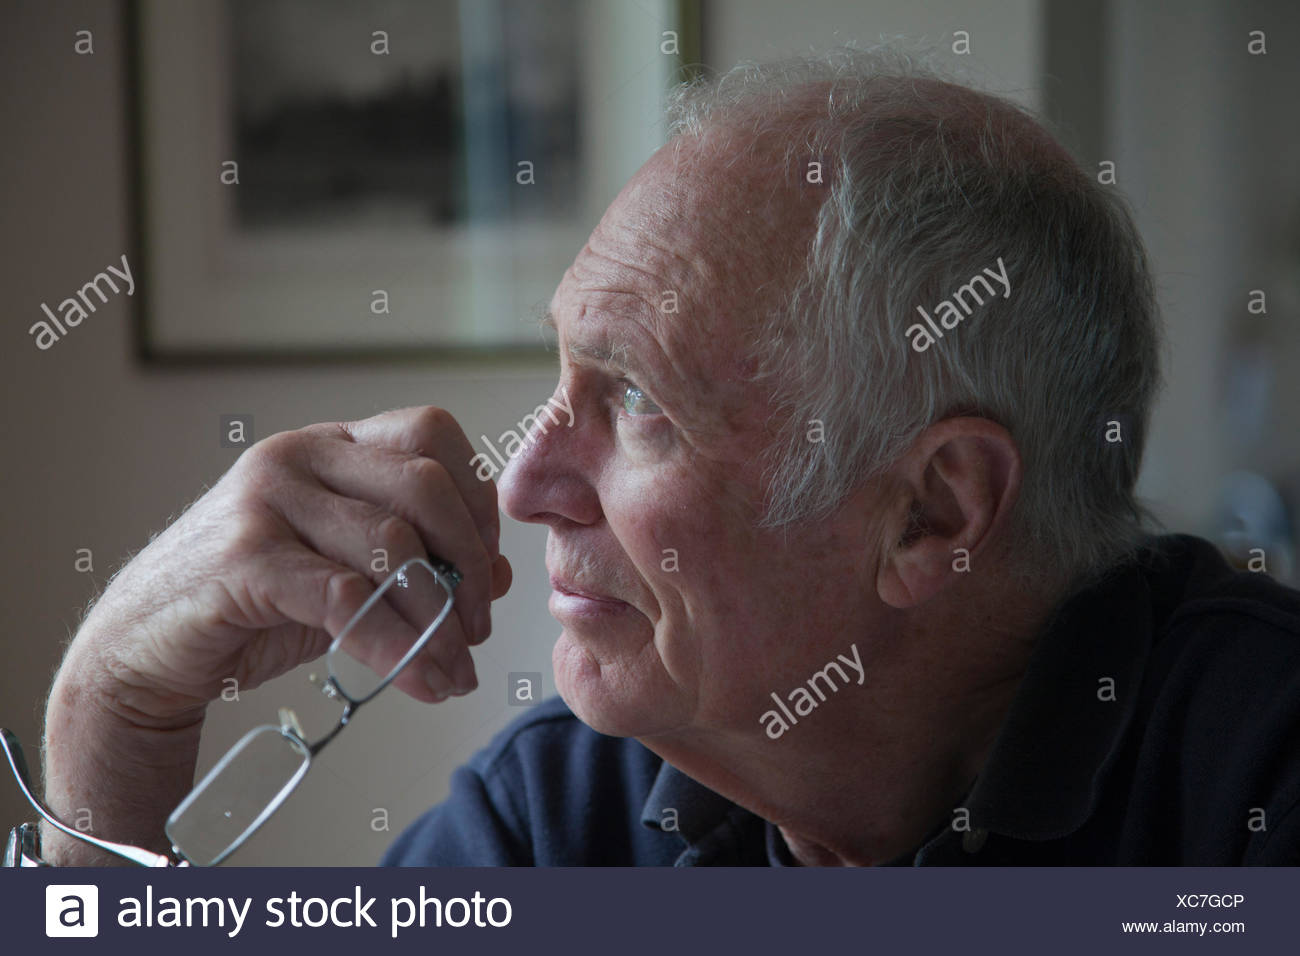 Senior man, holding eyeglasses, looking out of window - Stock Image